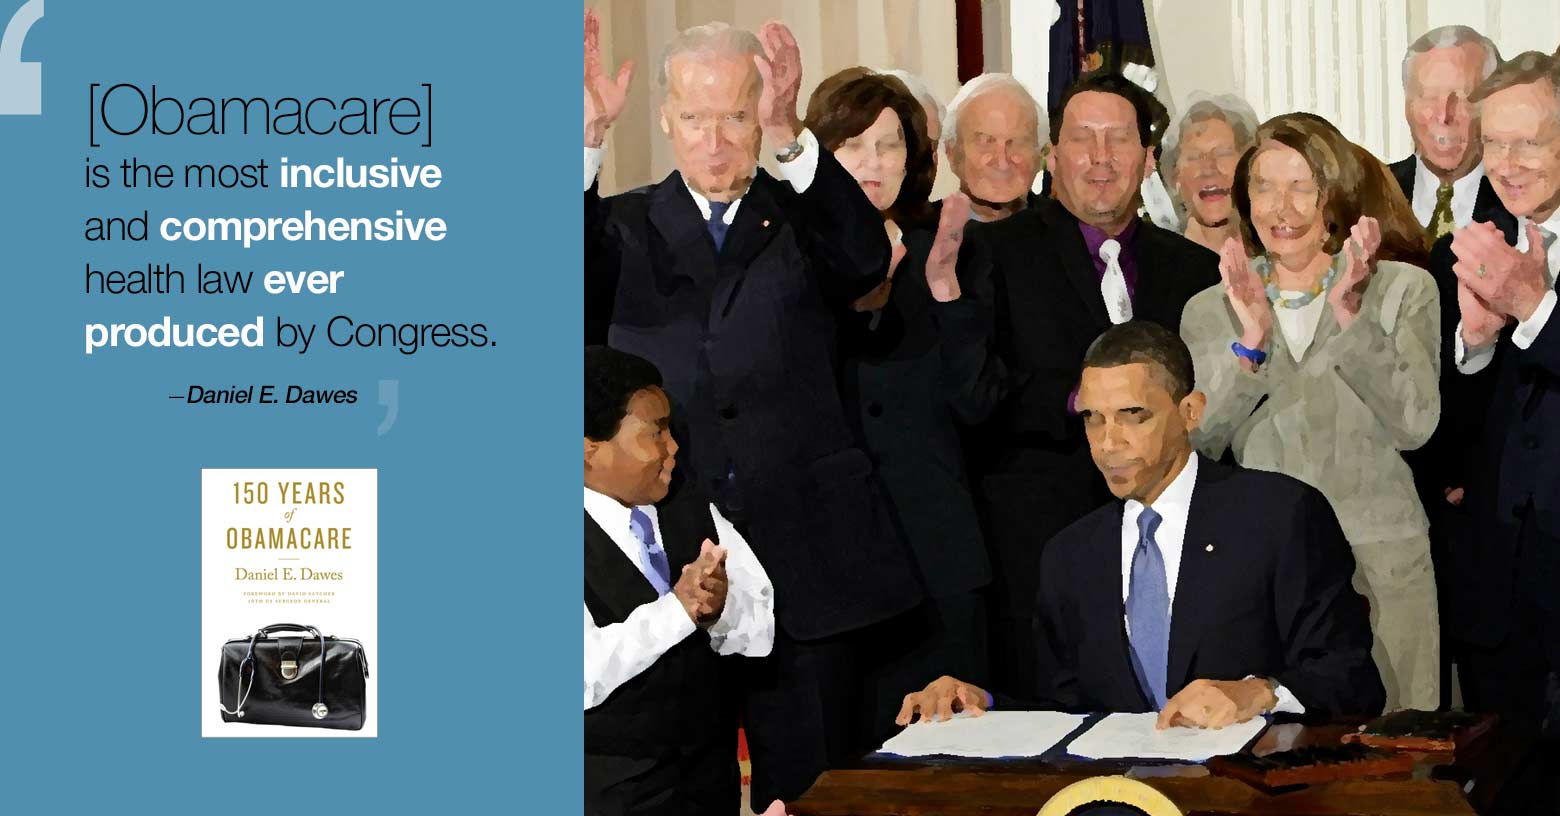 Dissecting ObamaCare and its impact photo